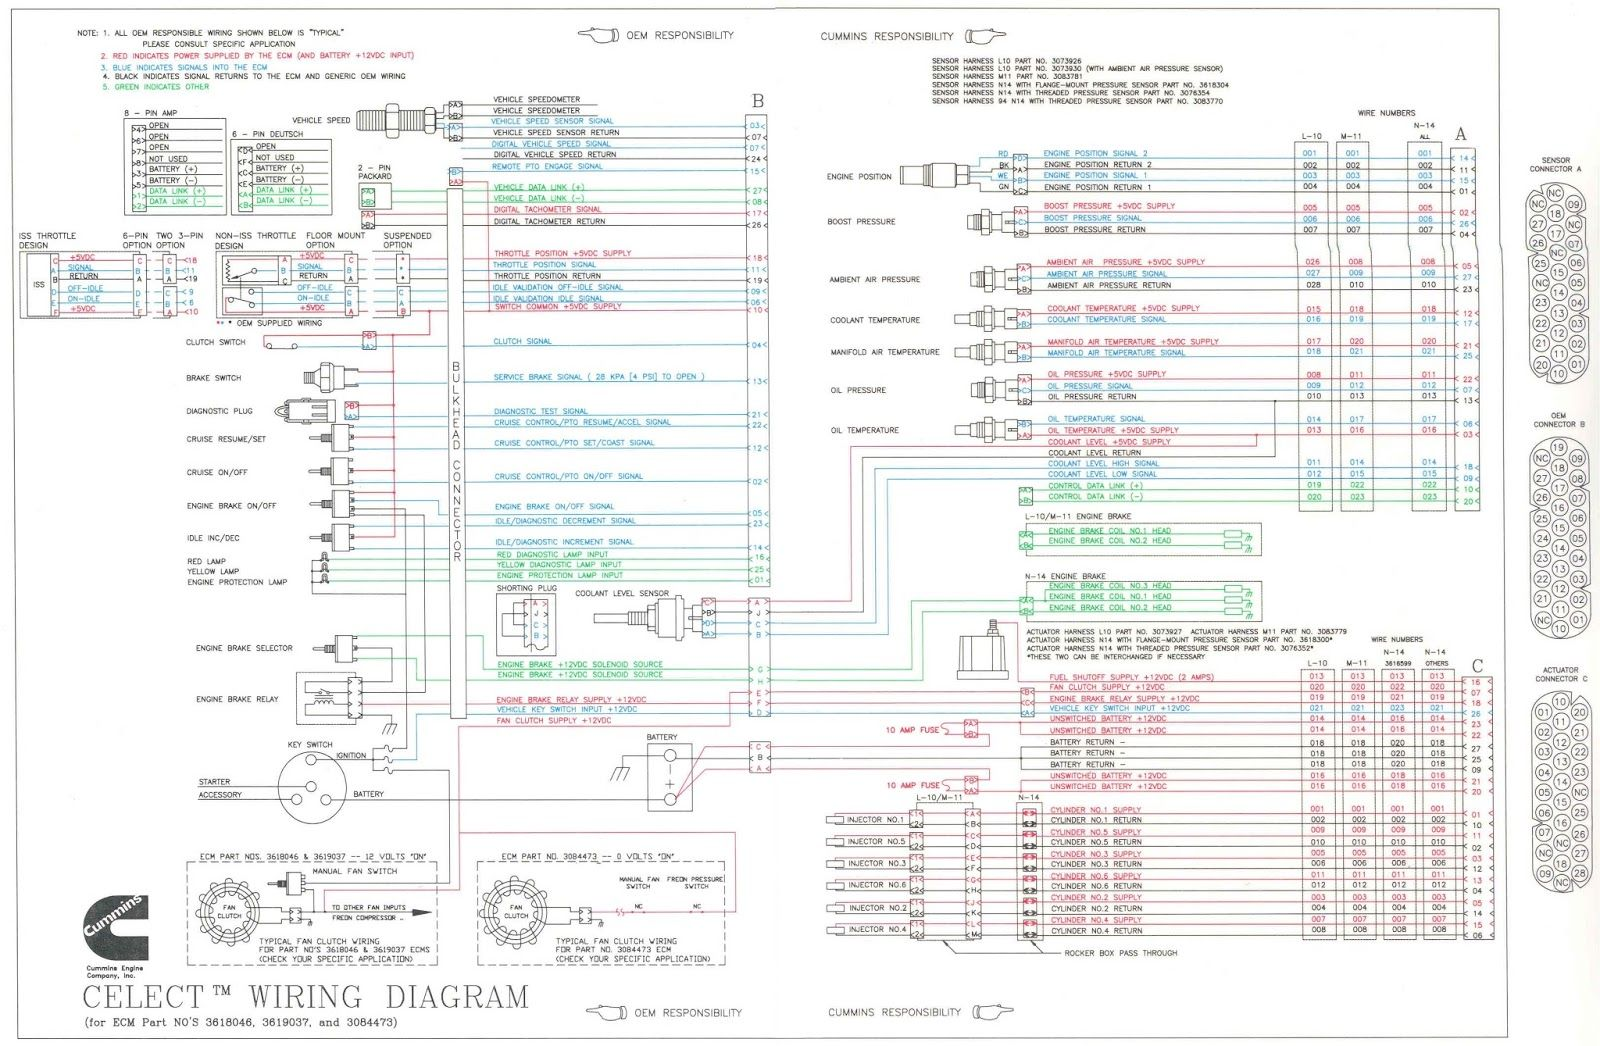 [DHAV_9290]  Stunning N14 Celect Ecm Wiring Diagram Photos Electrical And For Cummins |  Cummins, Electrical diagram, Cummins trucks | Cummins N14 Wiring Schematic |  | Pinterest